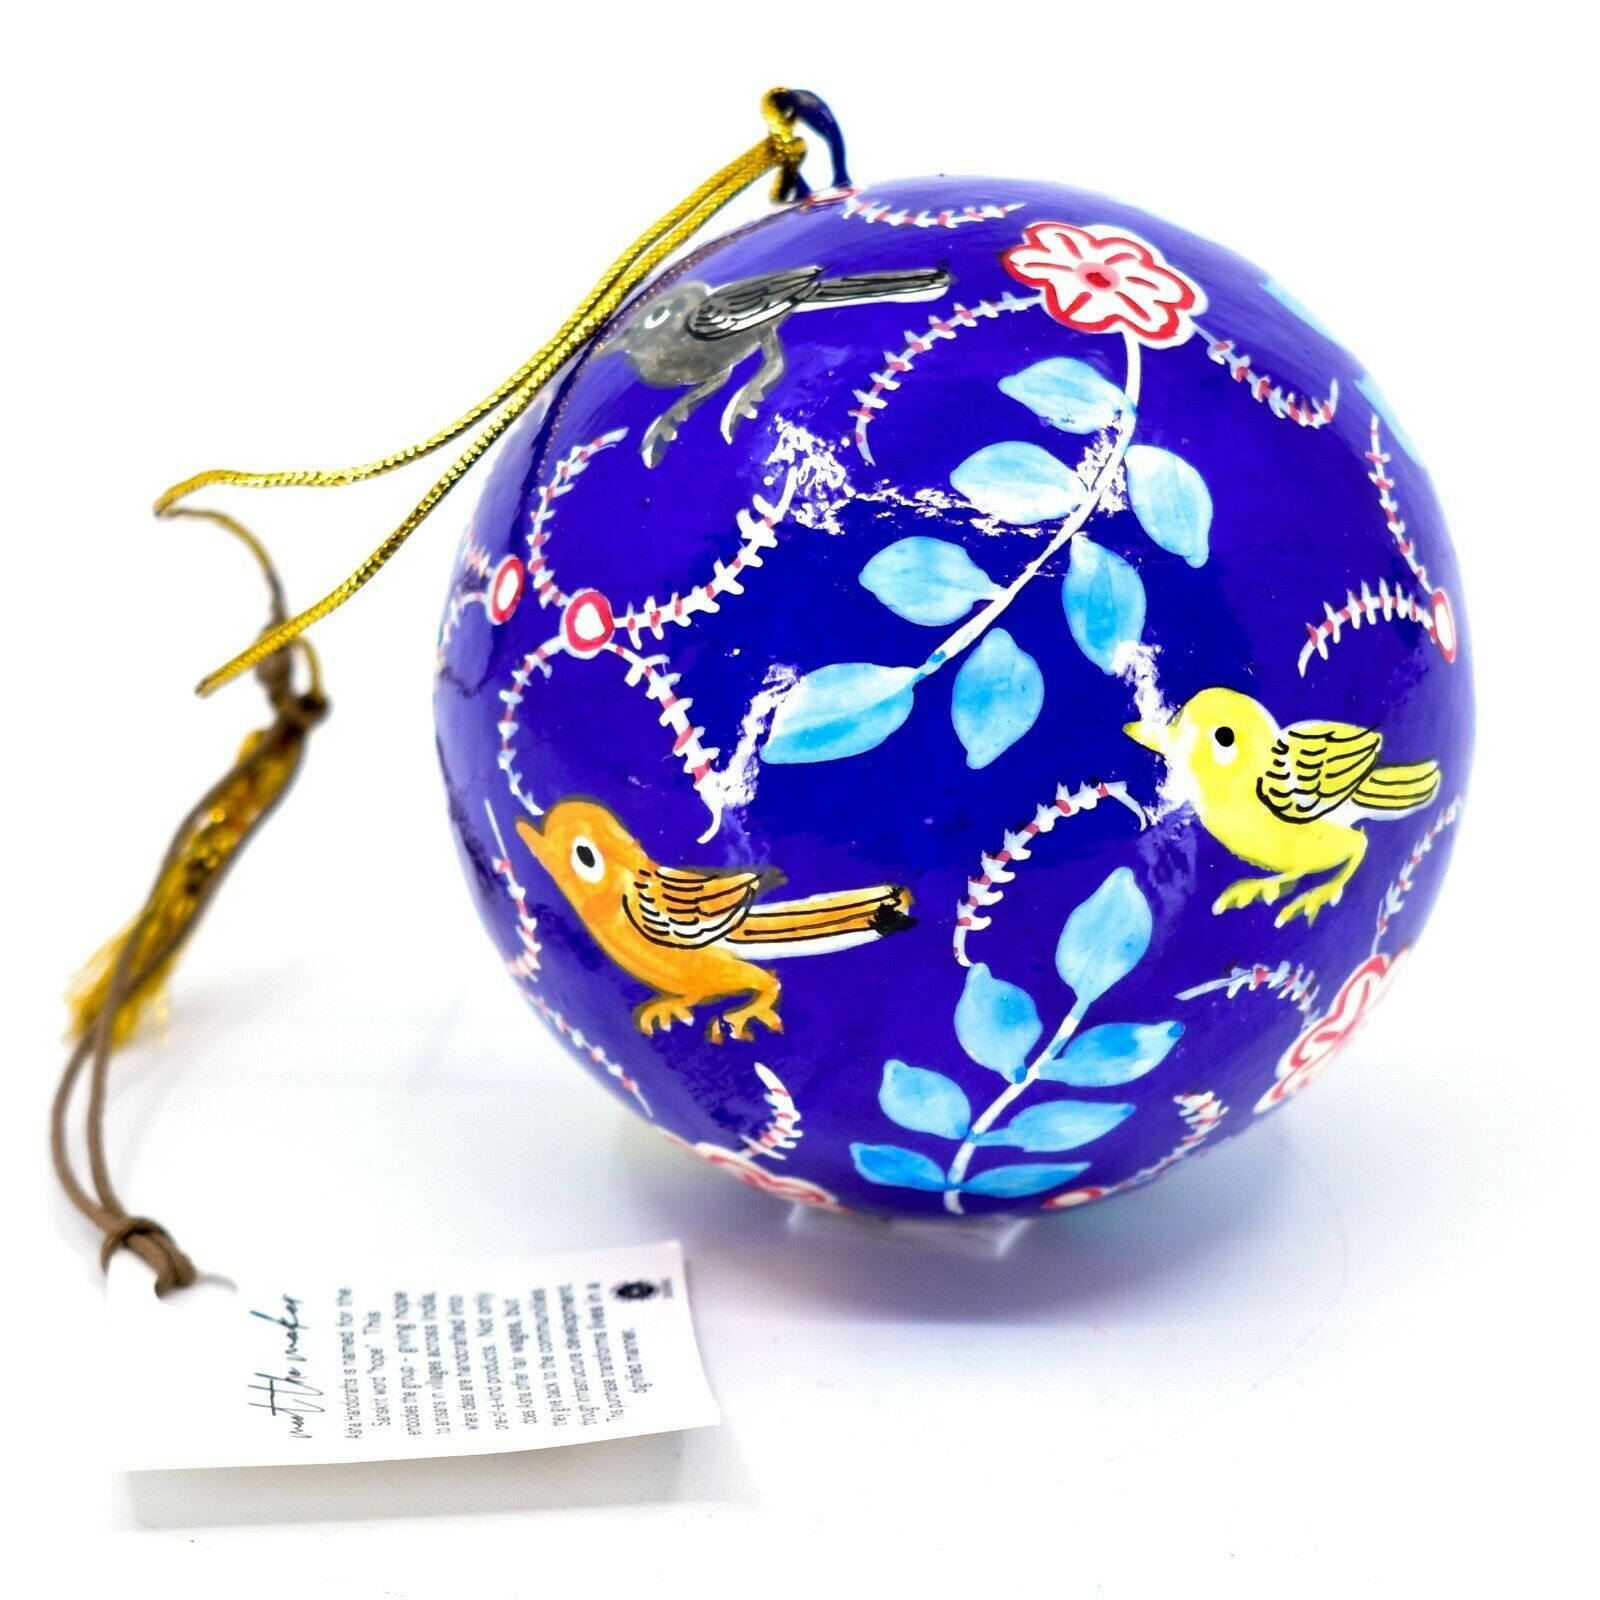 Asha Handicrafts Hand Painted Papier-Mâché Birds Holiday Christmas Ornament